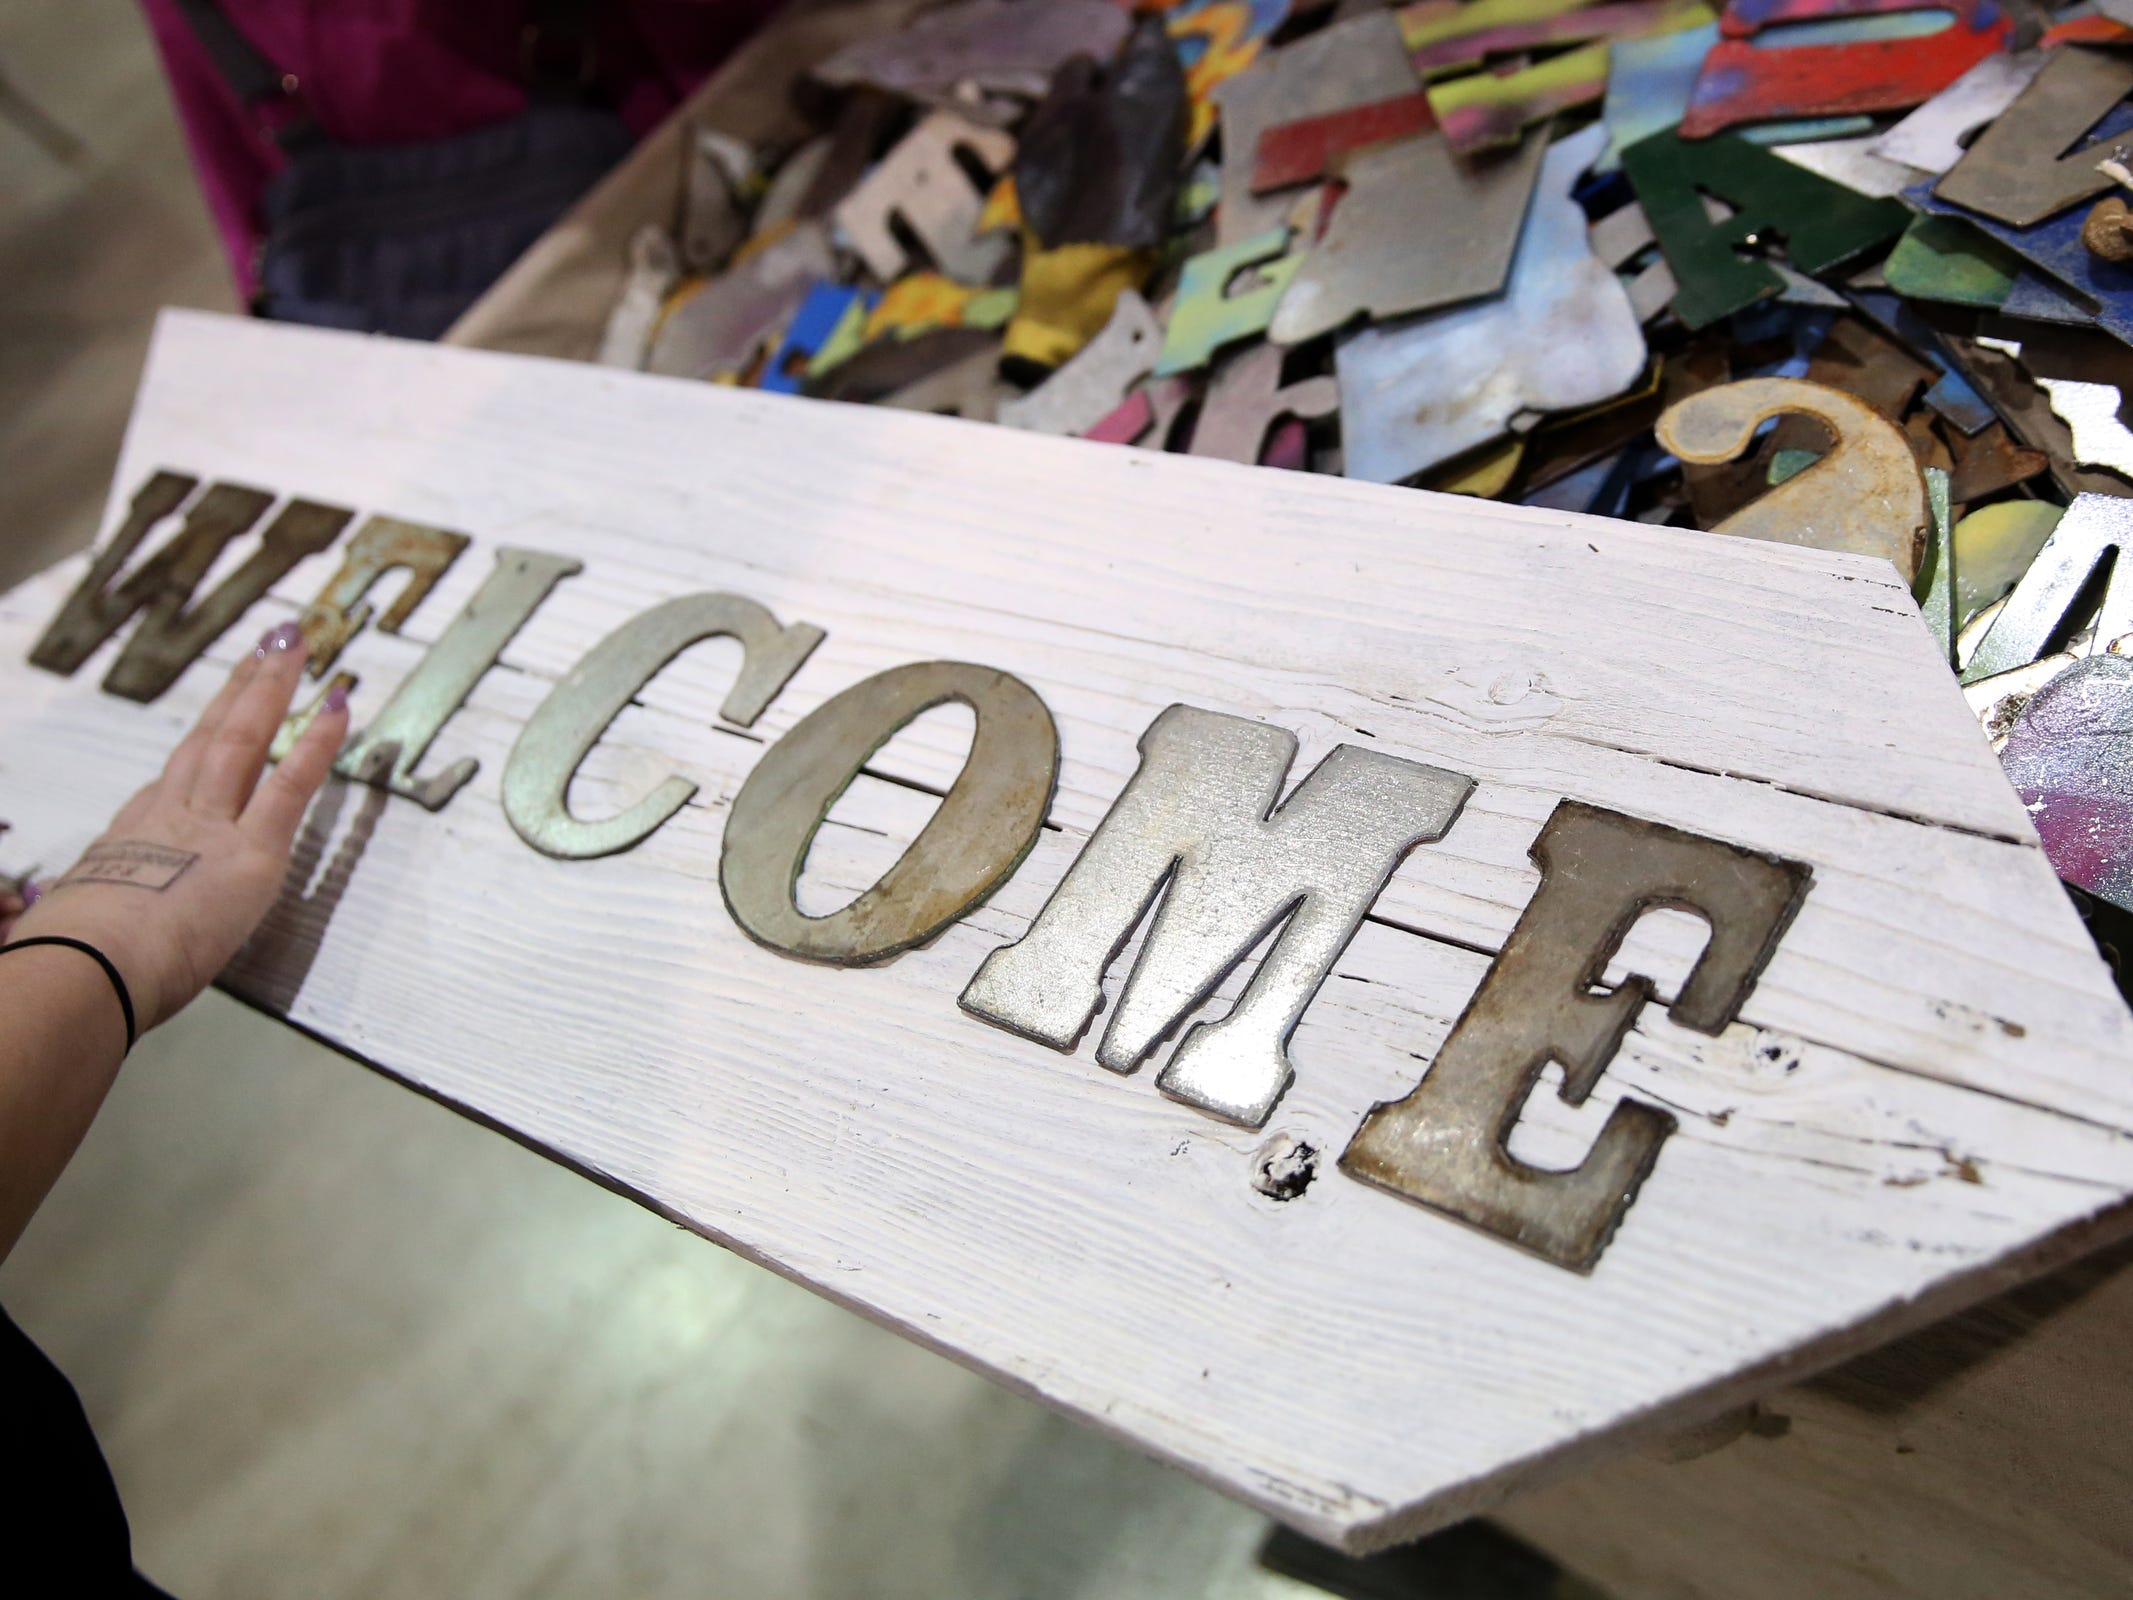 People mix and match metal letters to create custom signs during The Great Junk Hunt, a traveling vintage market, at the Oregon State Fairgrounds in Salem on April 13, 2019.